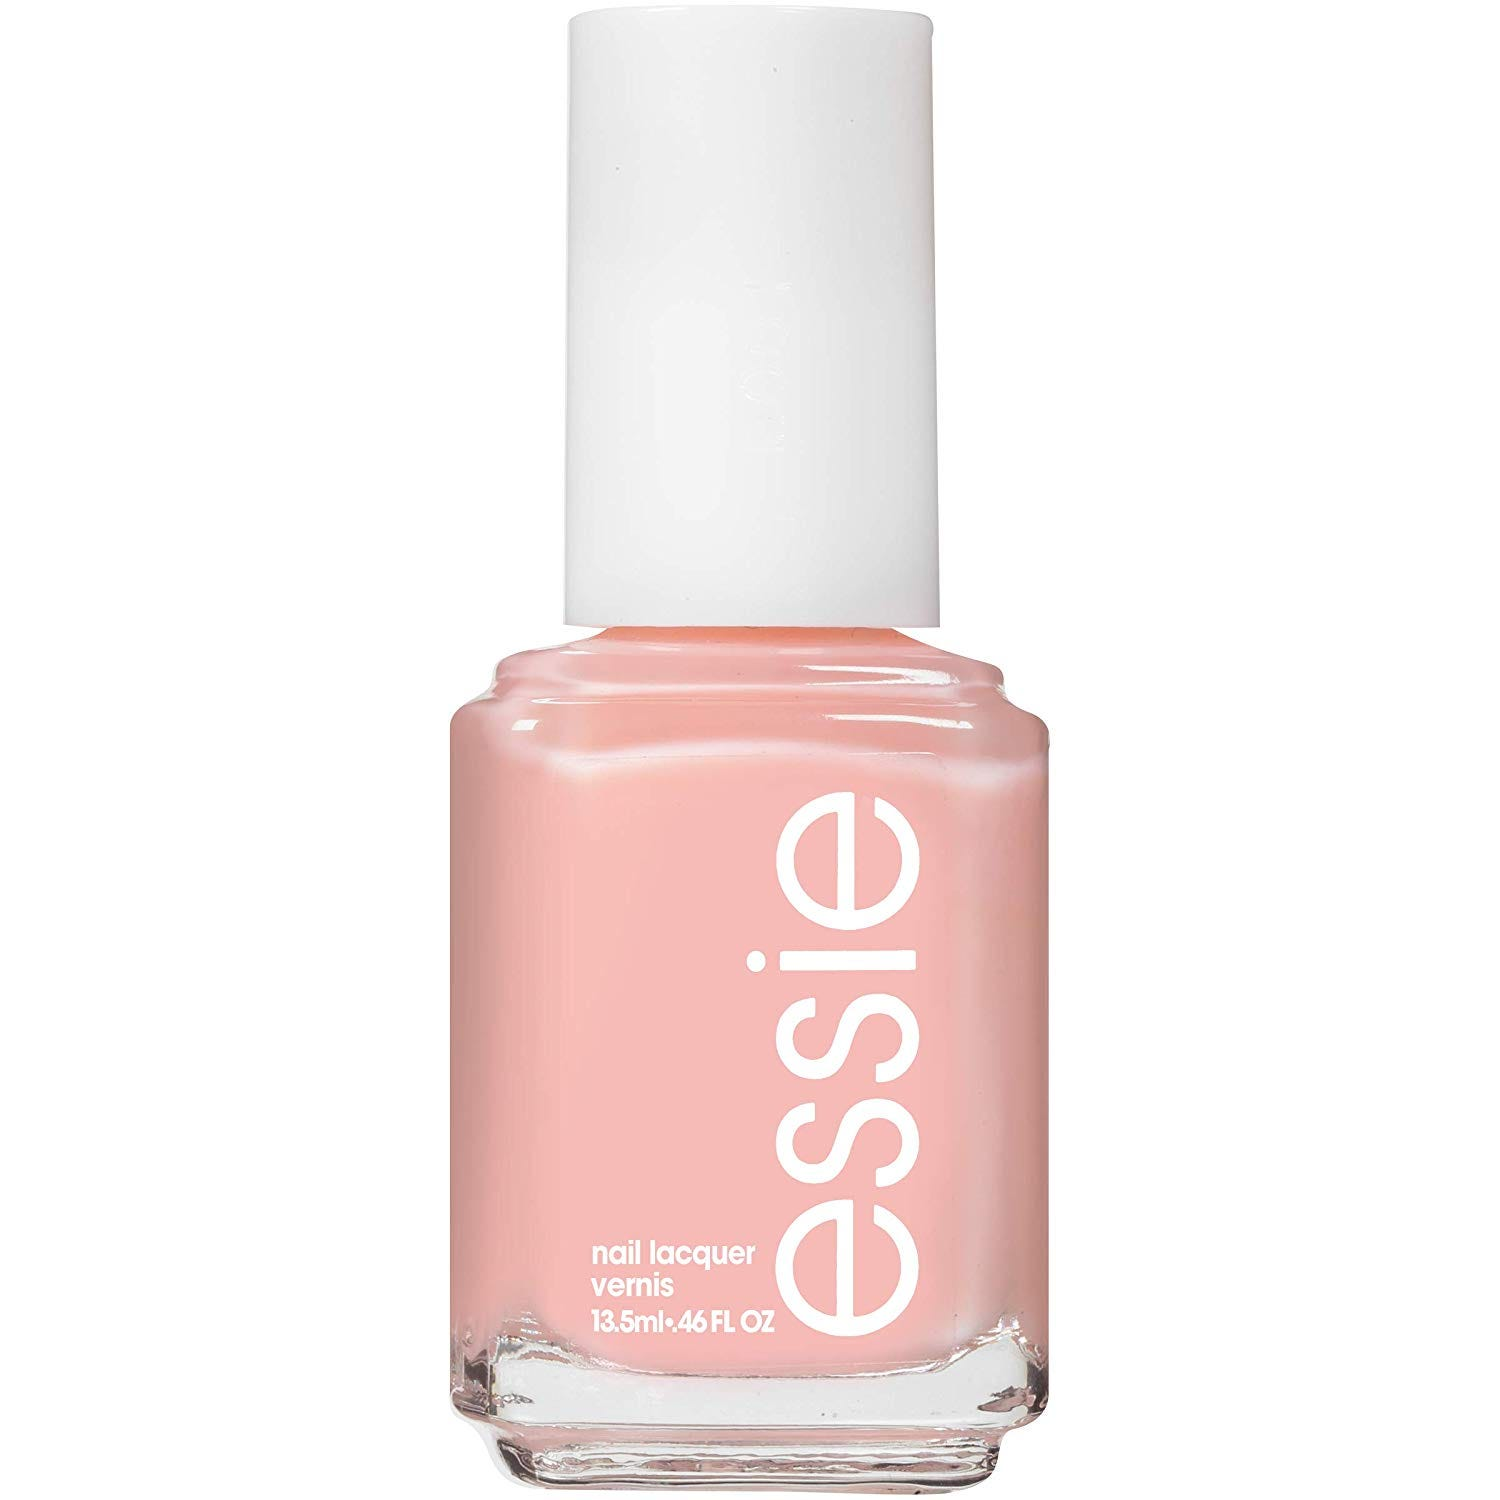 Top Essie Nail Polish Colors Amazon Prime Day Deal 2019